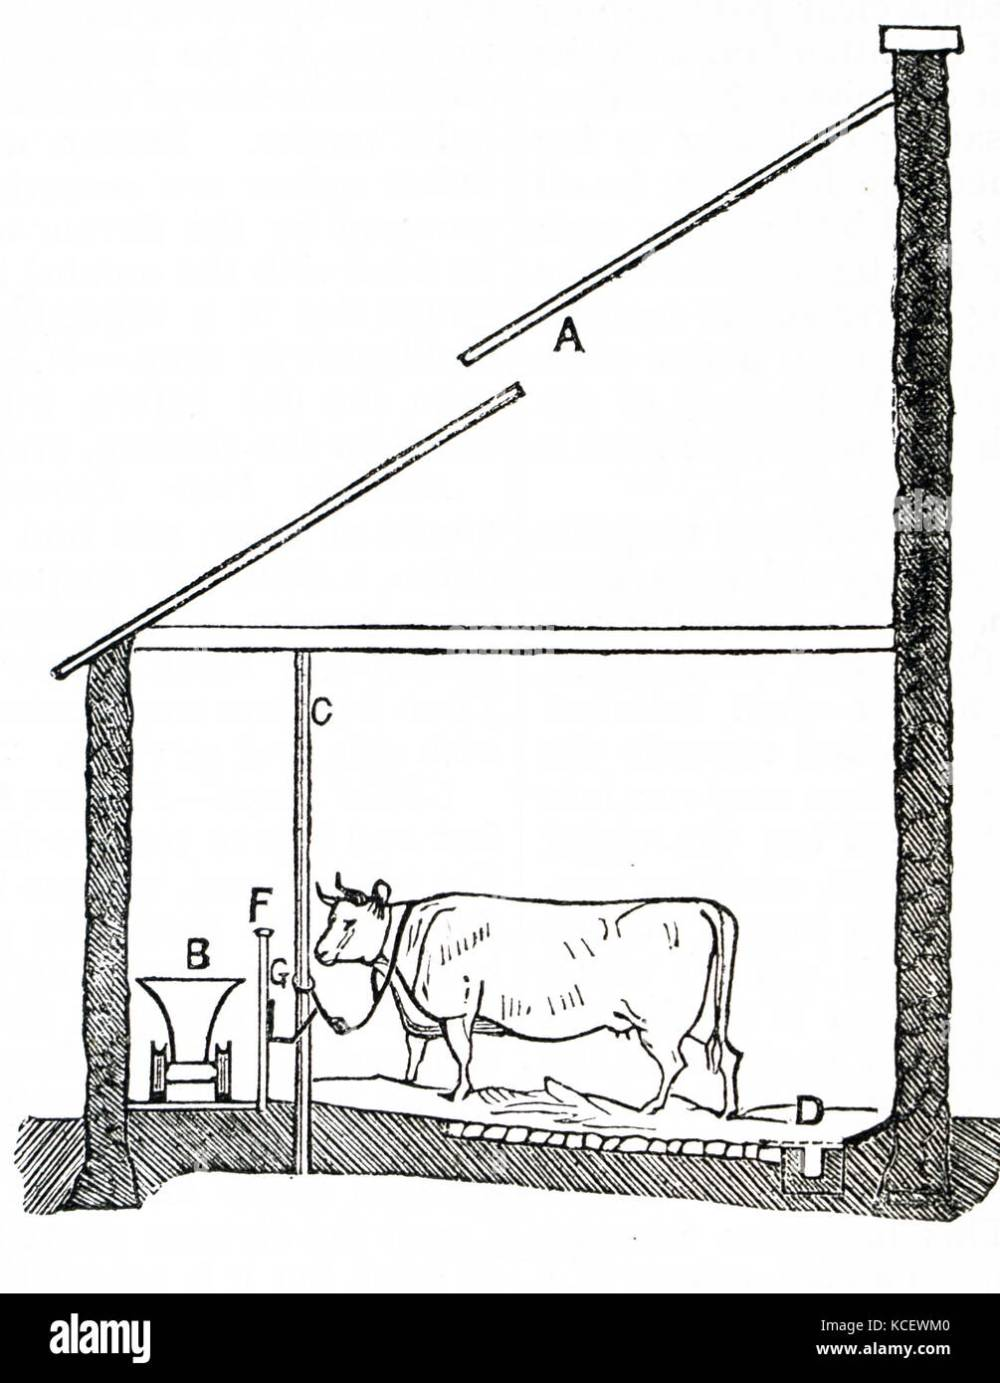 medium resolution of engraving depicting a diagram of a cow house in england a cow house is a